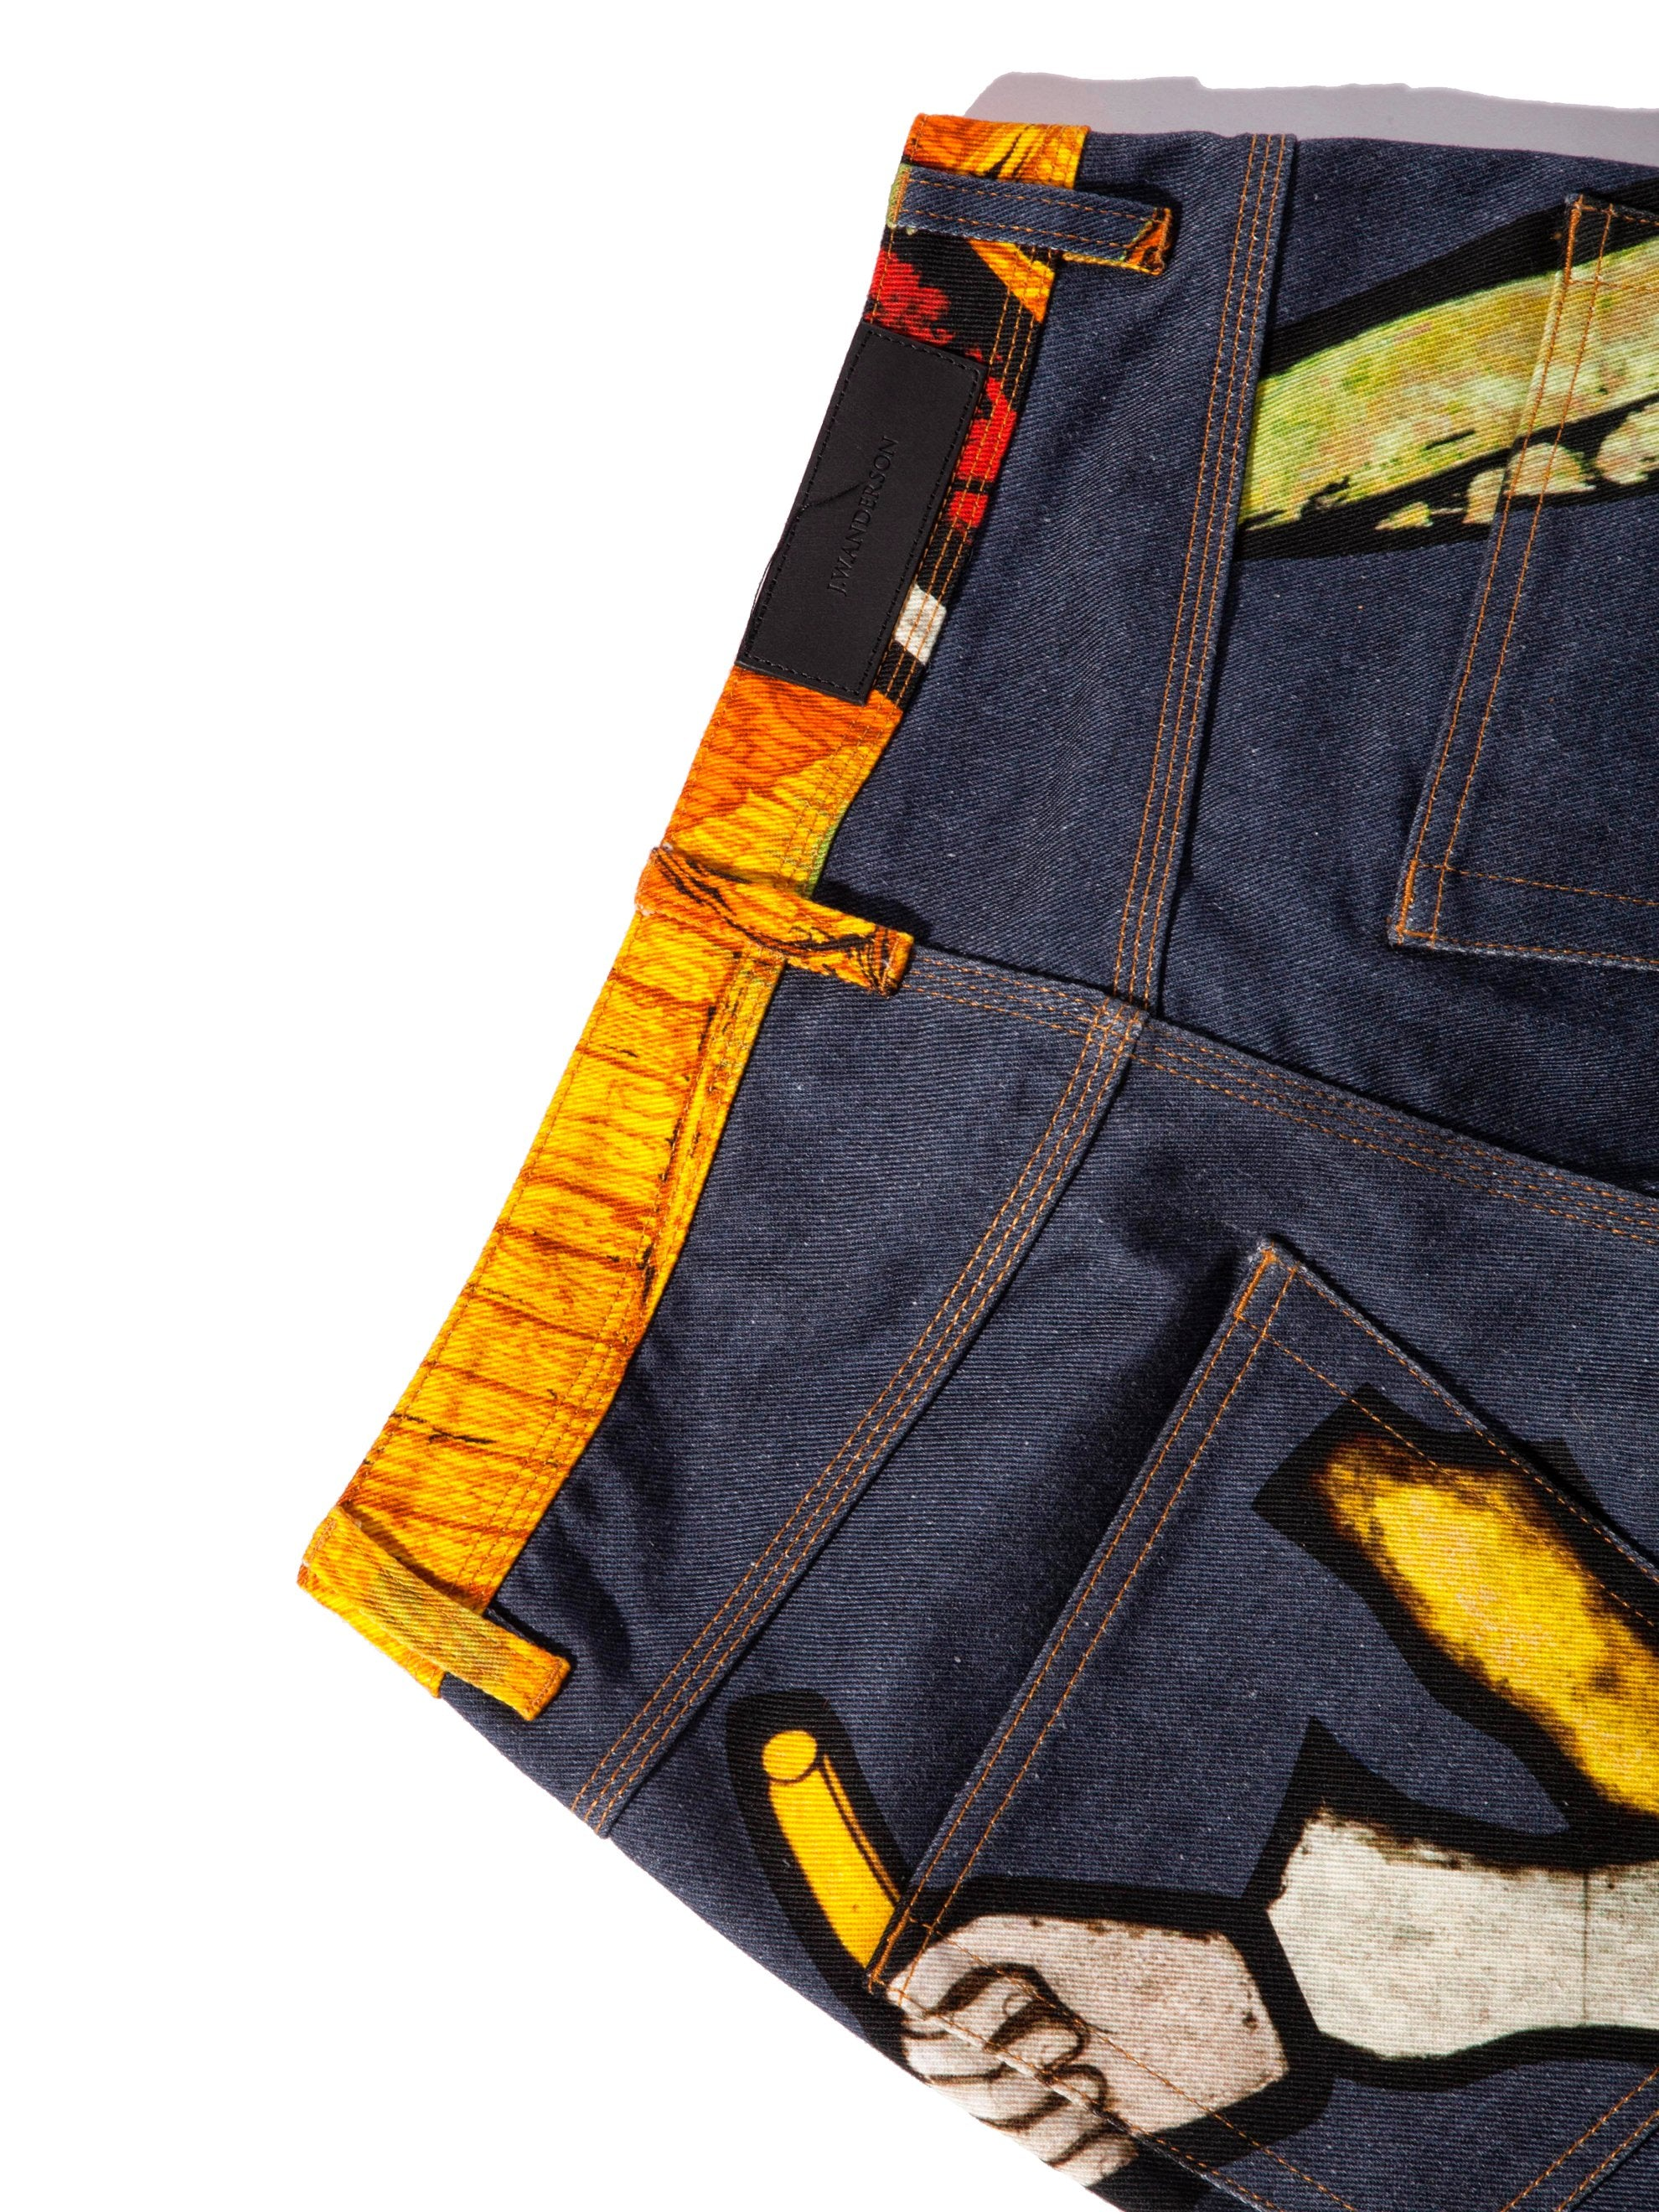 48 Tapestry Denim Trousers 8